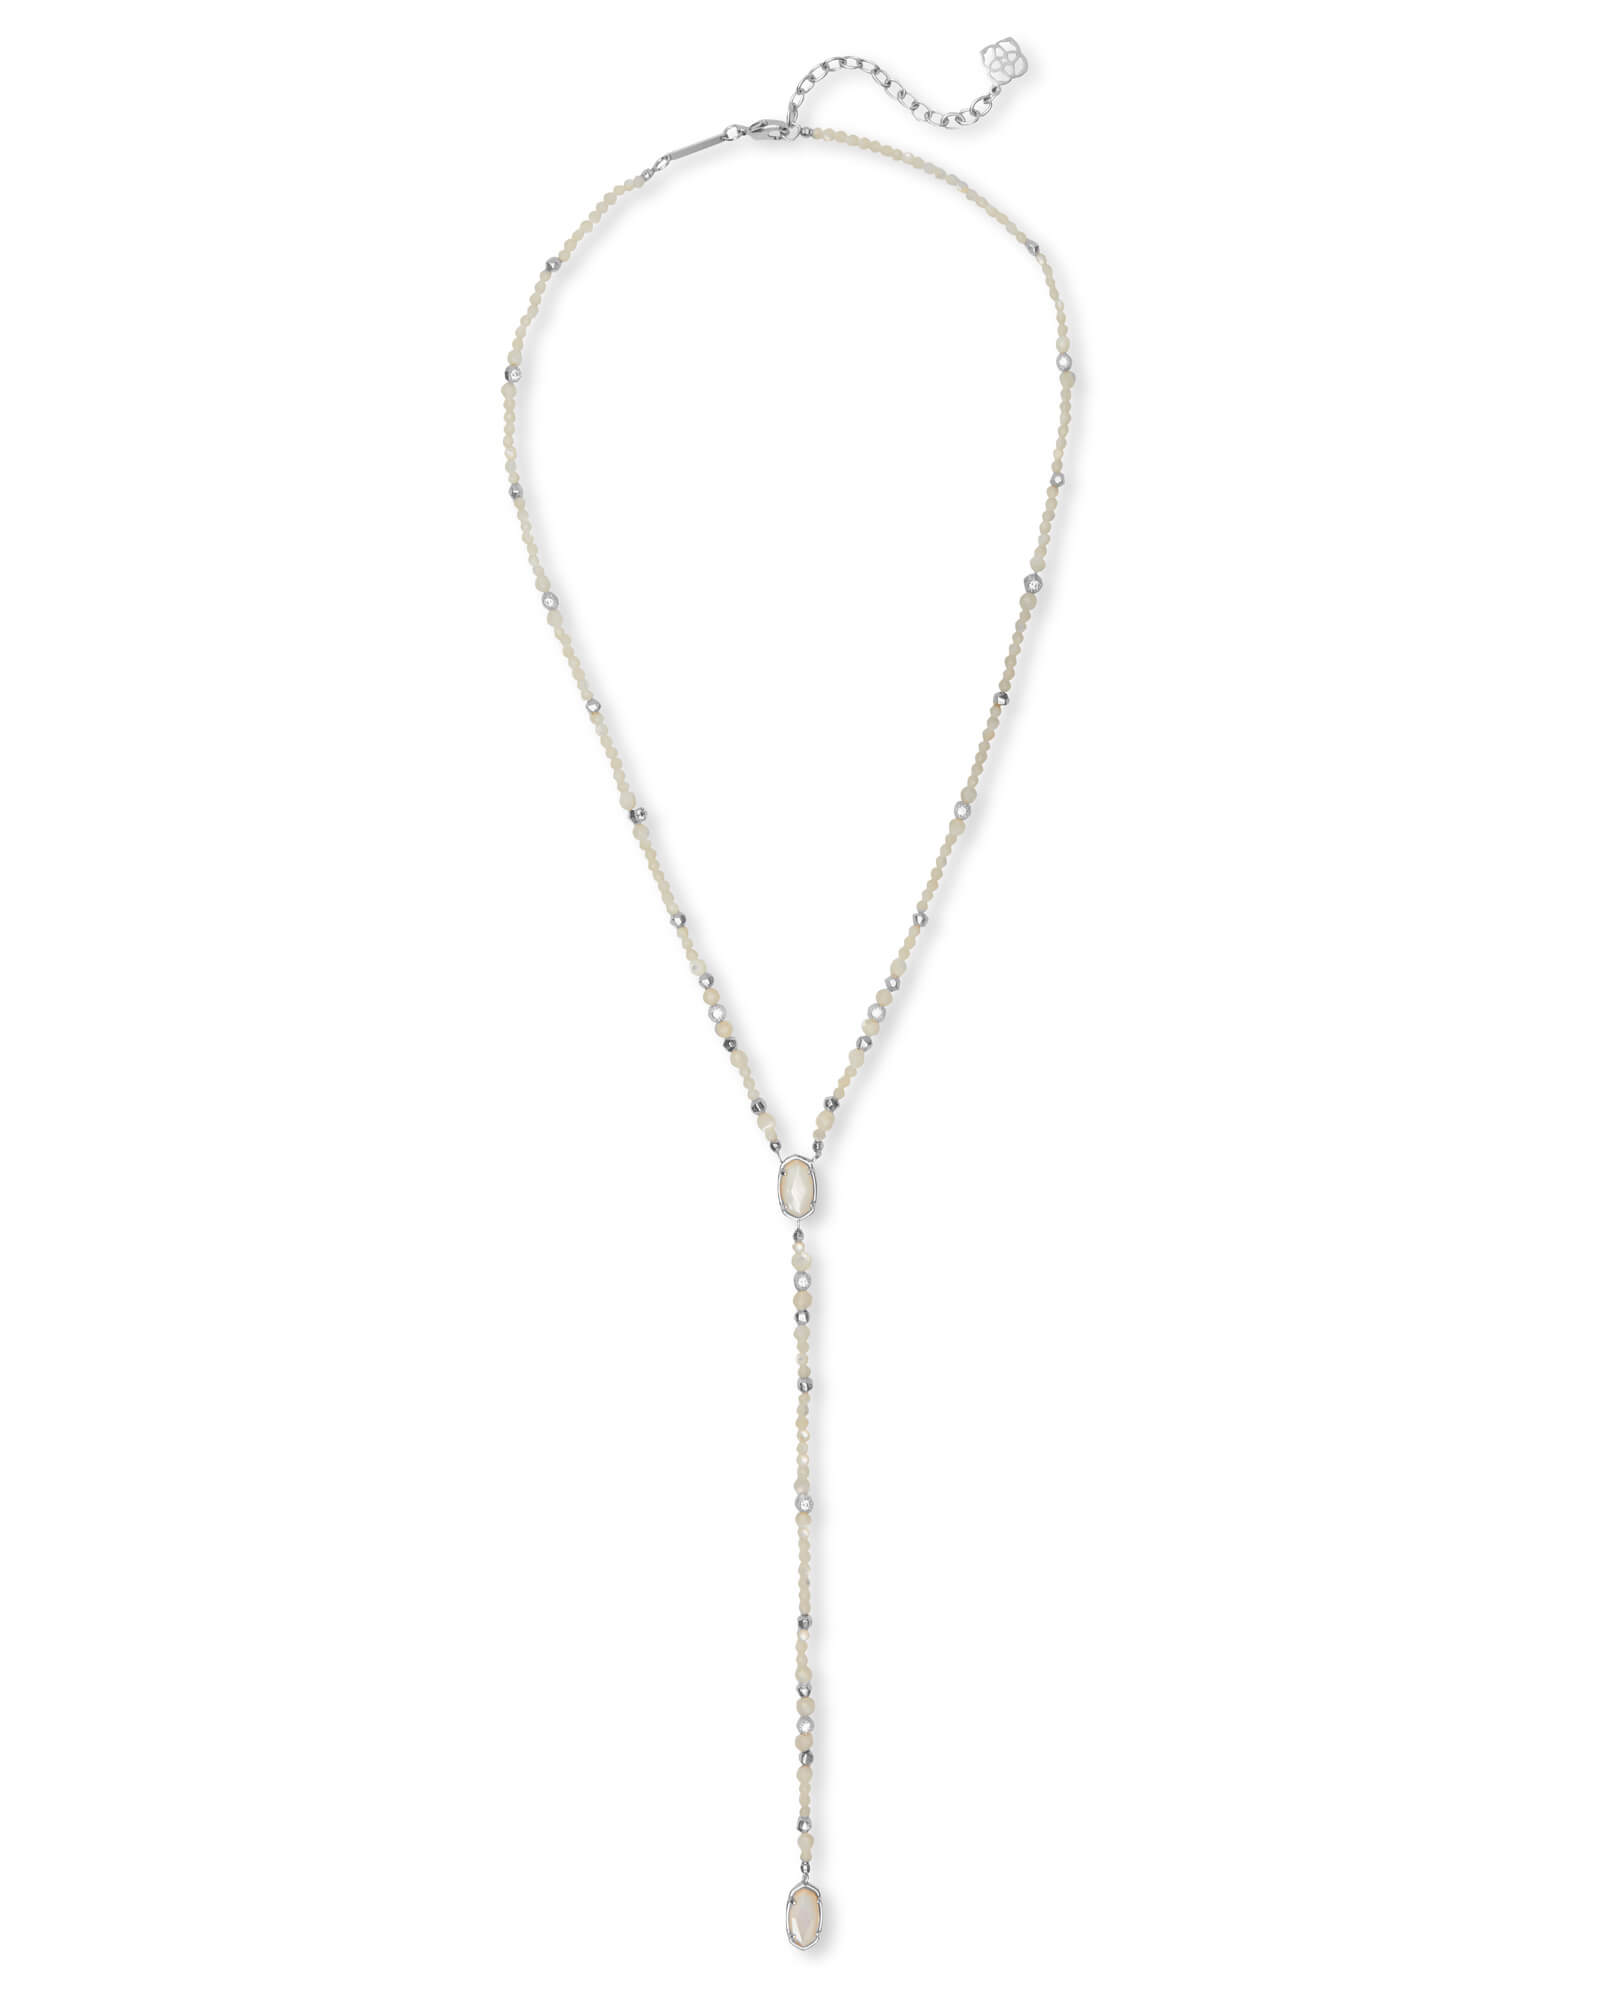 Bethany Silver Y Necklace in Ivory Pearl